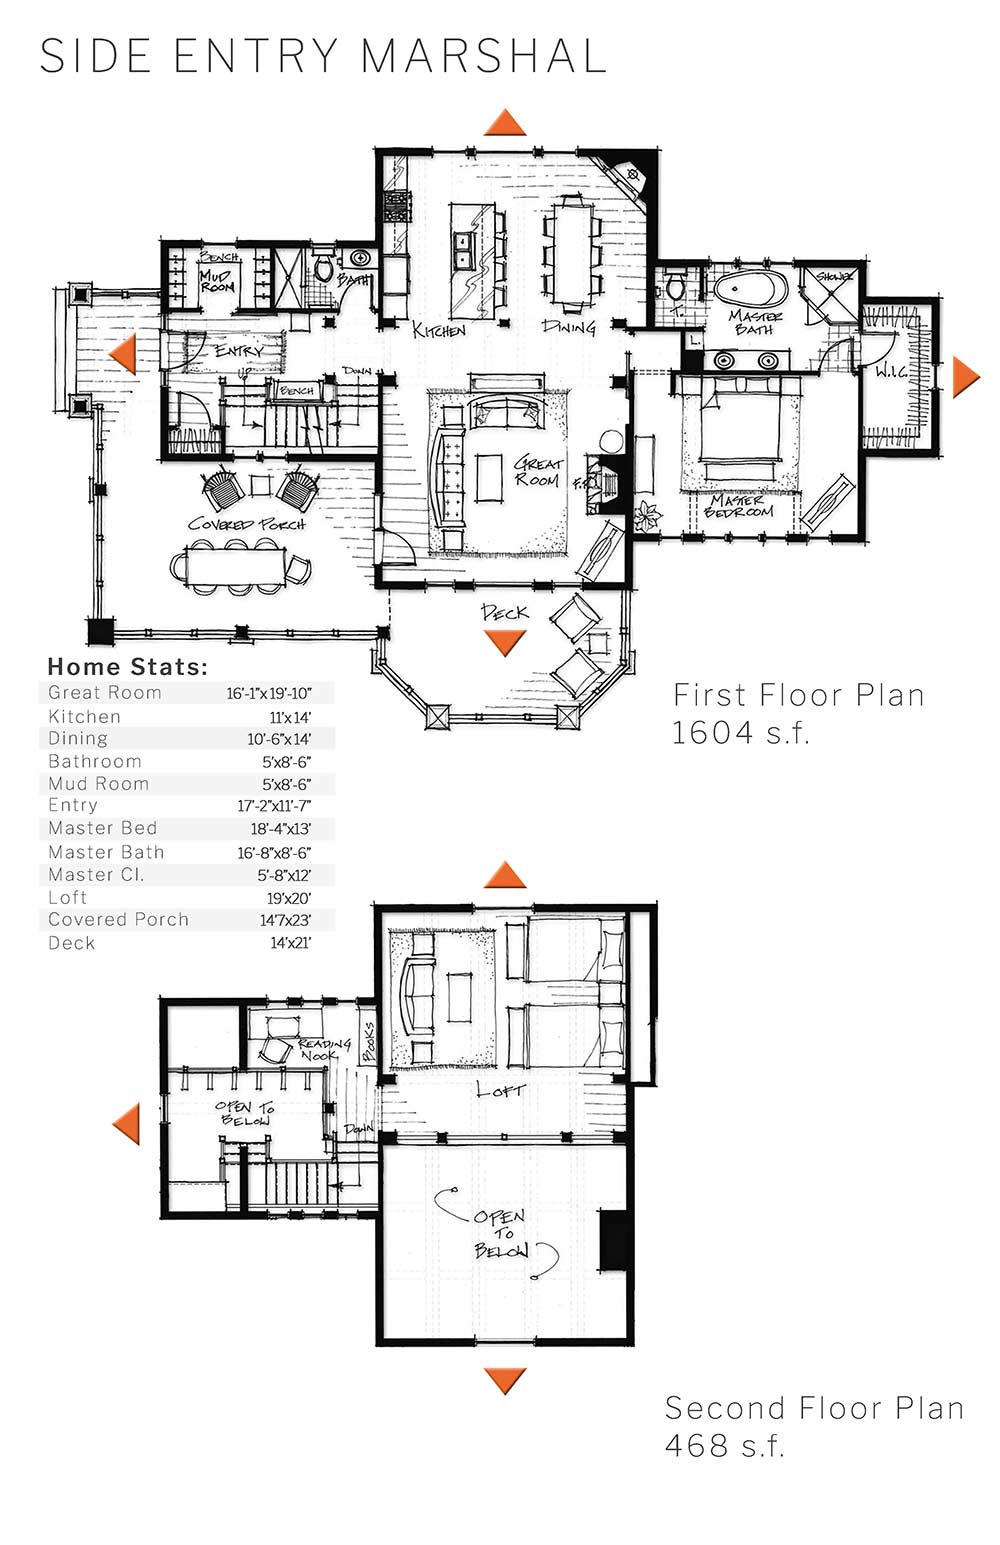 floor plan timber frame marshal side